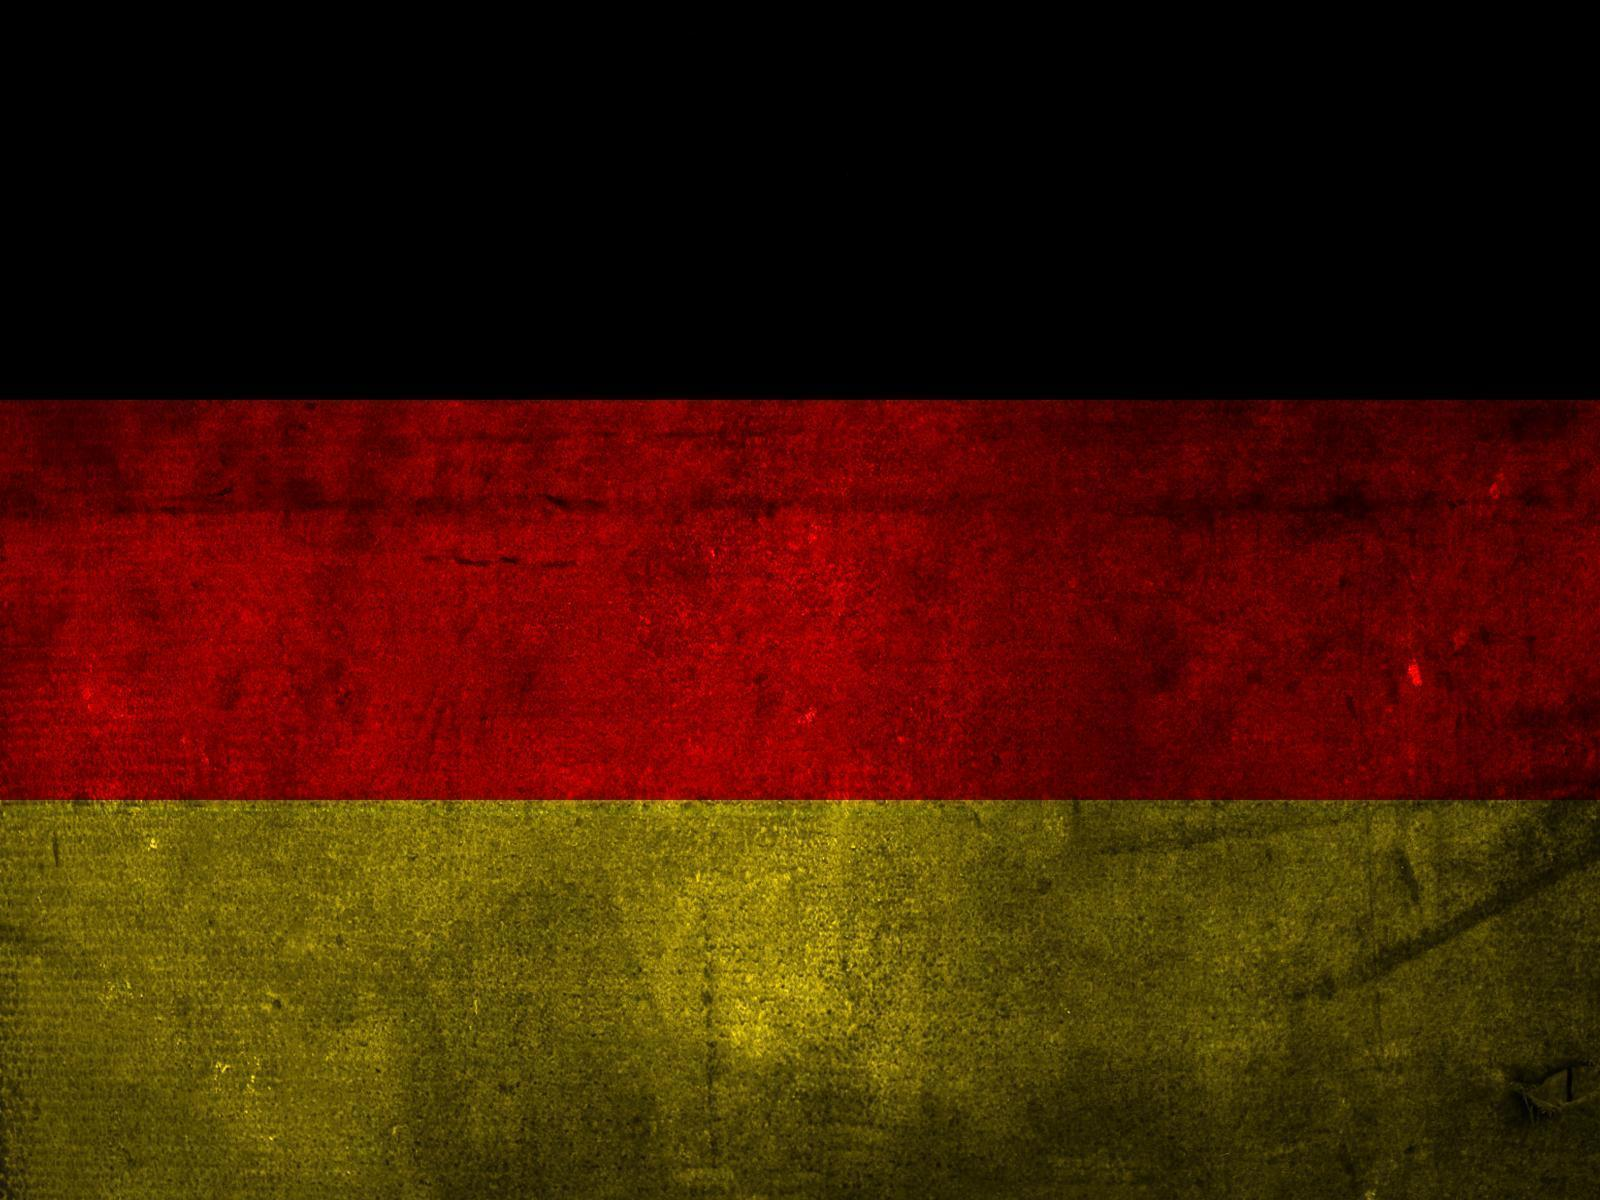 deutschland flag wallpaper - photo #3